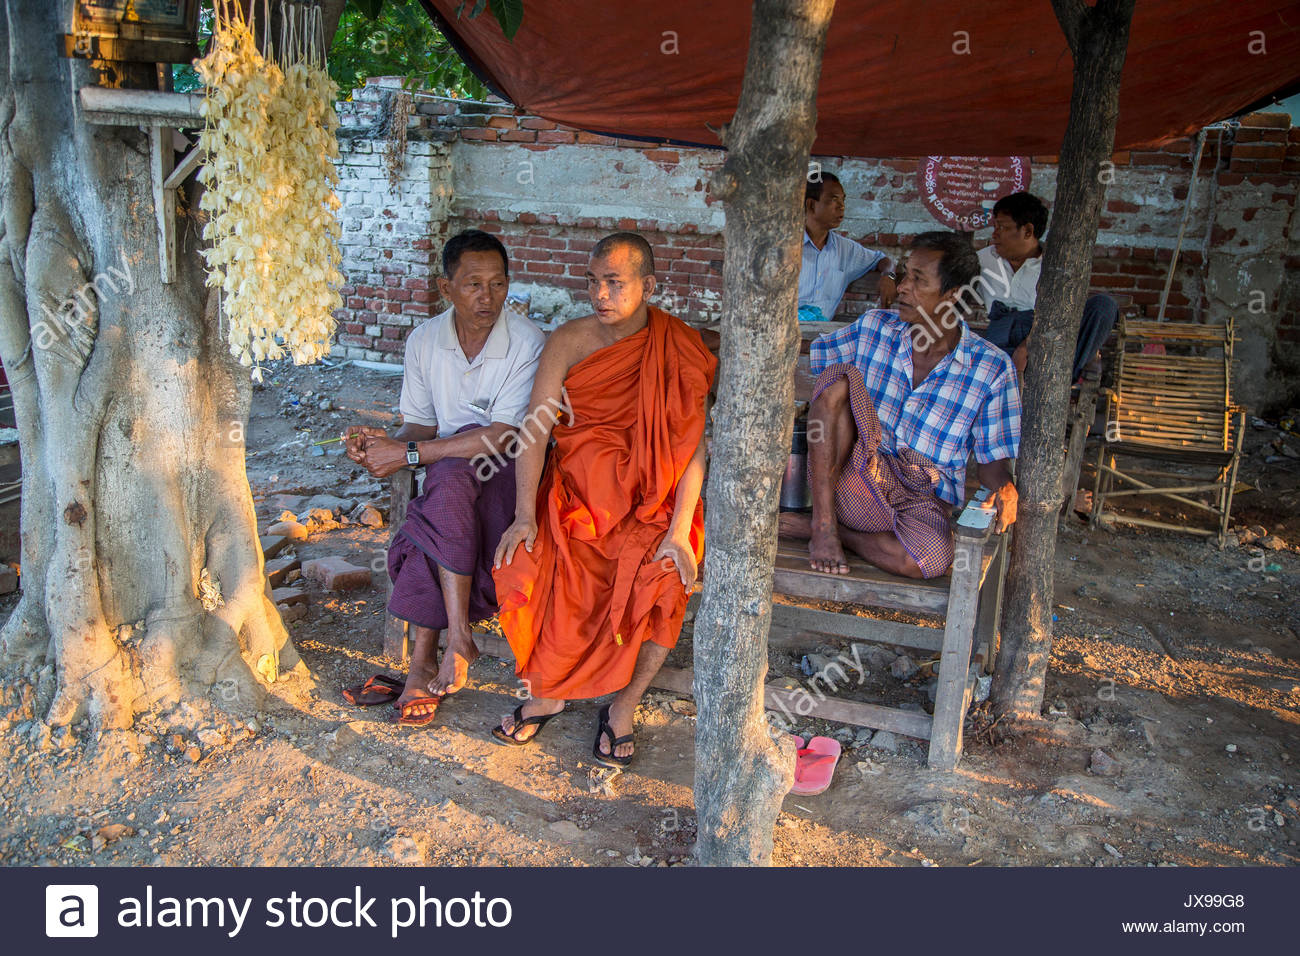 A monk sits on a bench next to two other men. - Stock Image